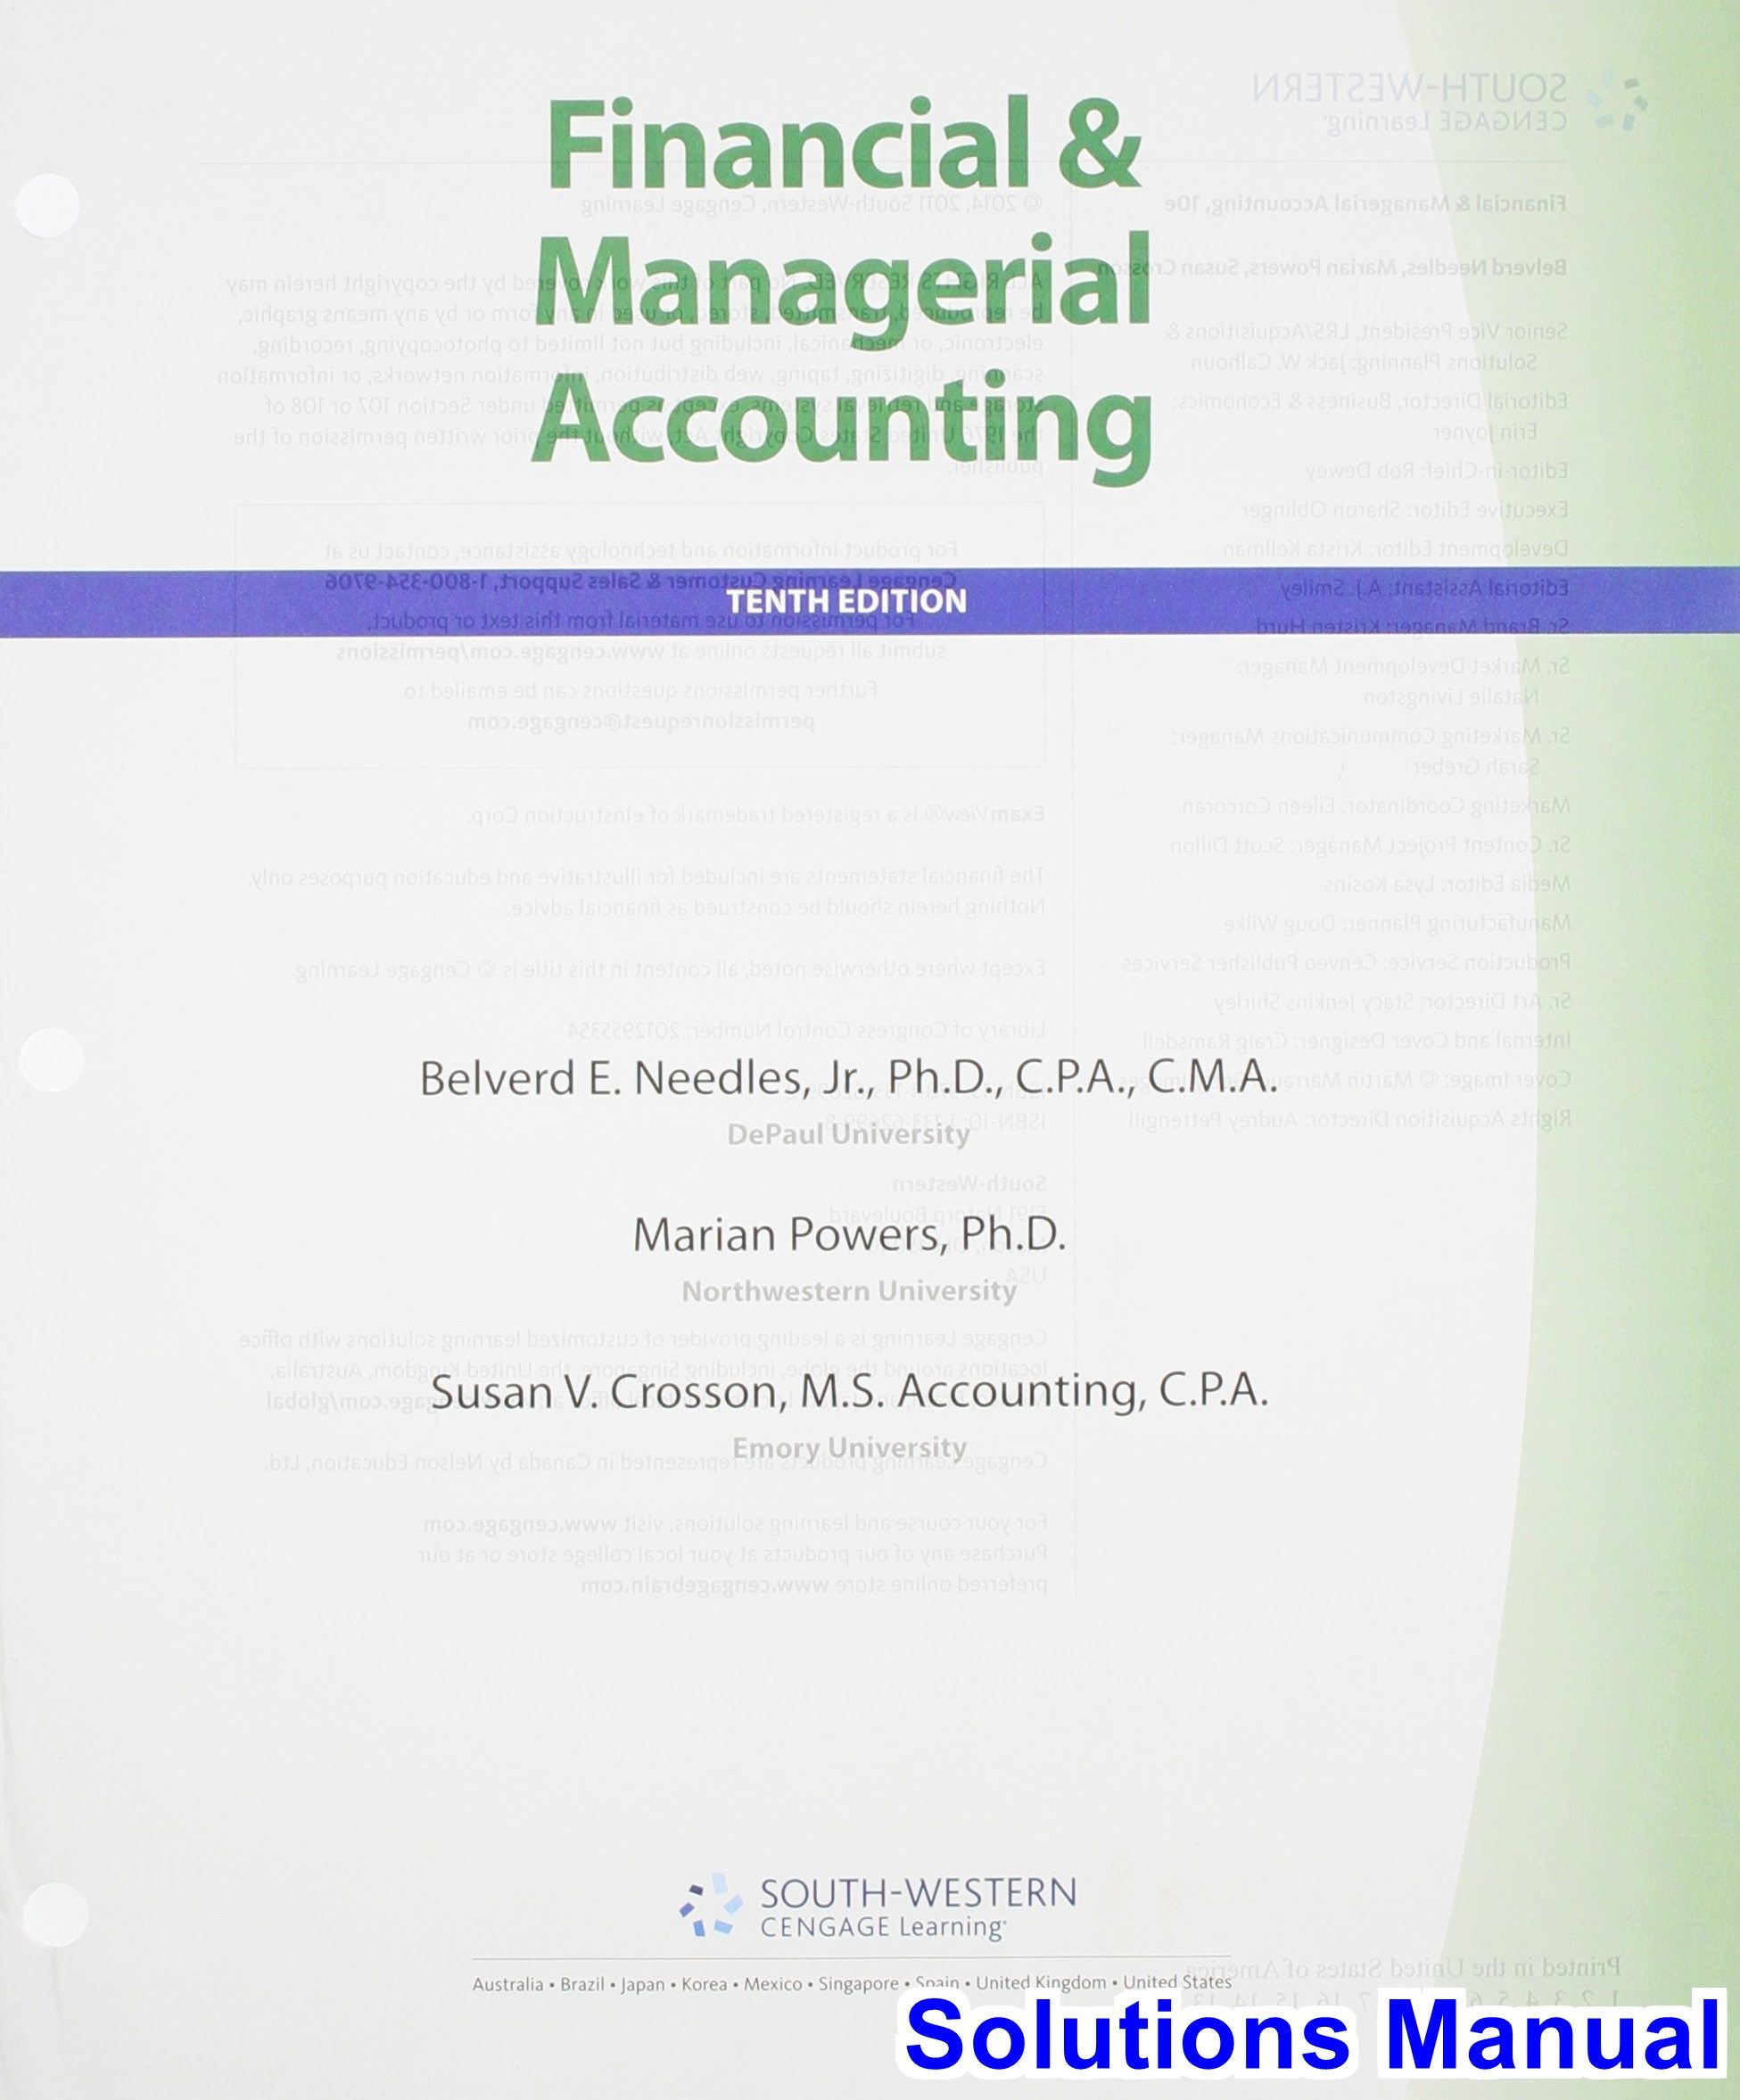 Financial and Managerial Accounting 10th Edition Needles Solutions Manual -  Test bank, Solutions manual,